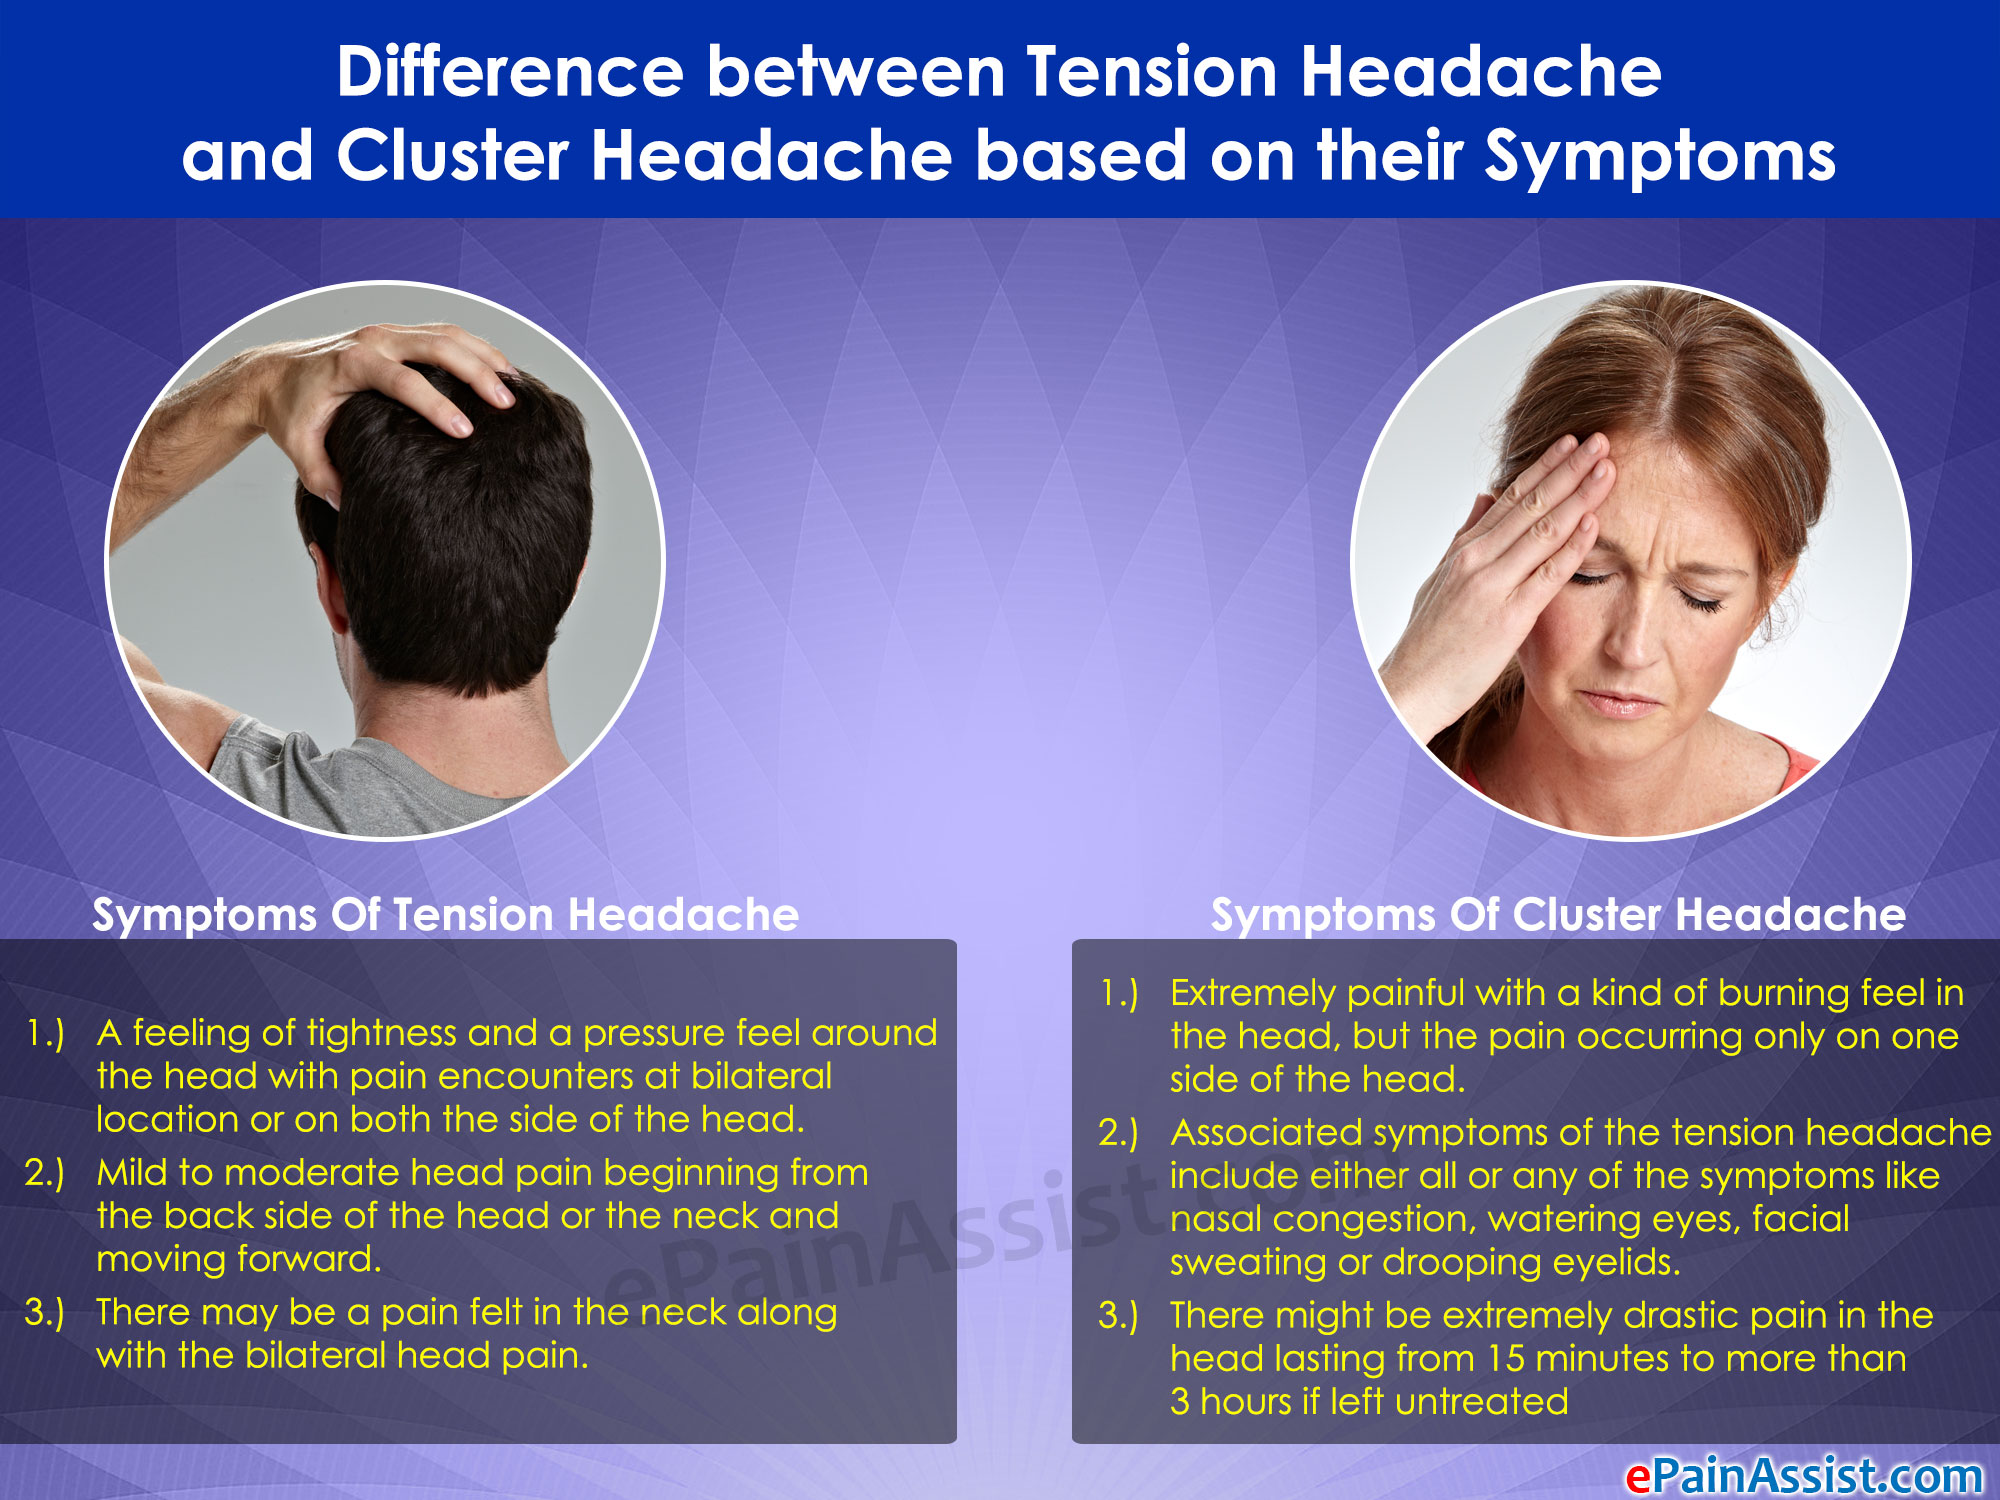 Difference Between Tension Headache And Cluster Headache Based On Their Symptoms